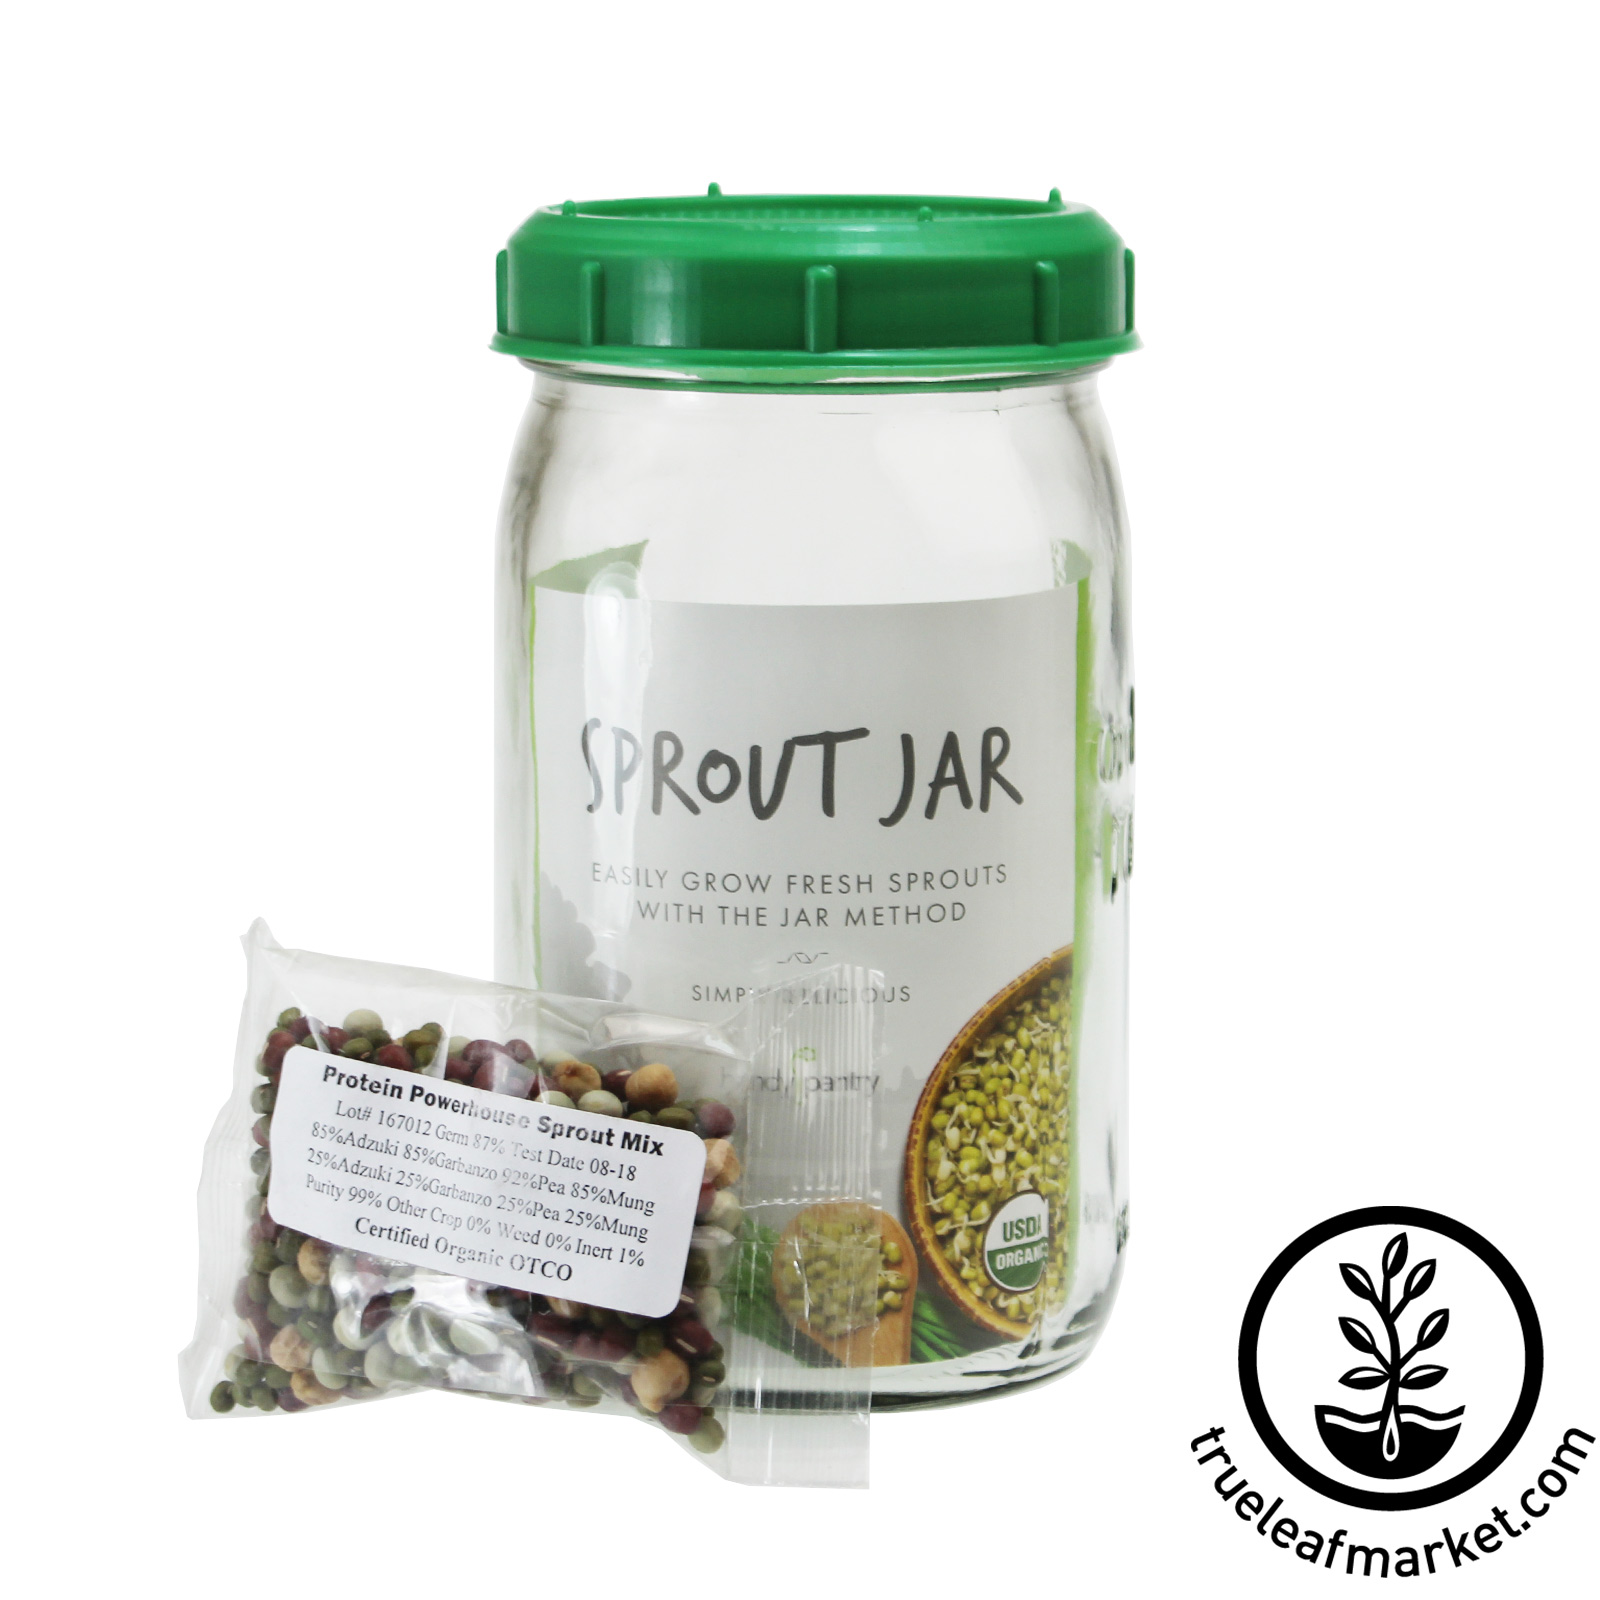 Sprouting Jar - Quart Size with Seed